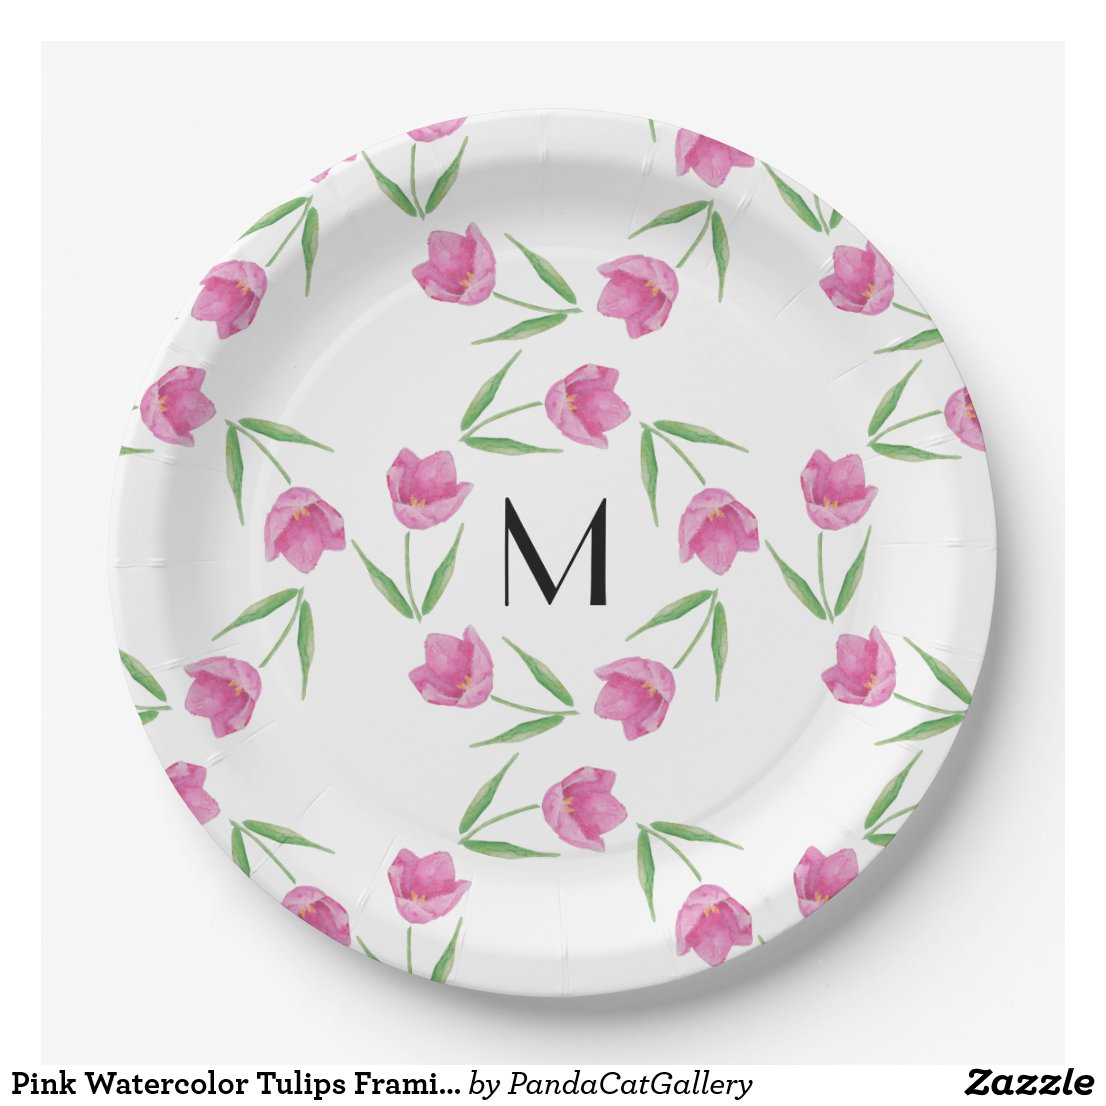 Pink Watercolor Tulips Framing Initial Paper Plate